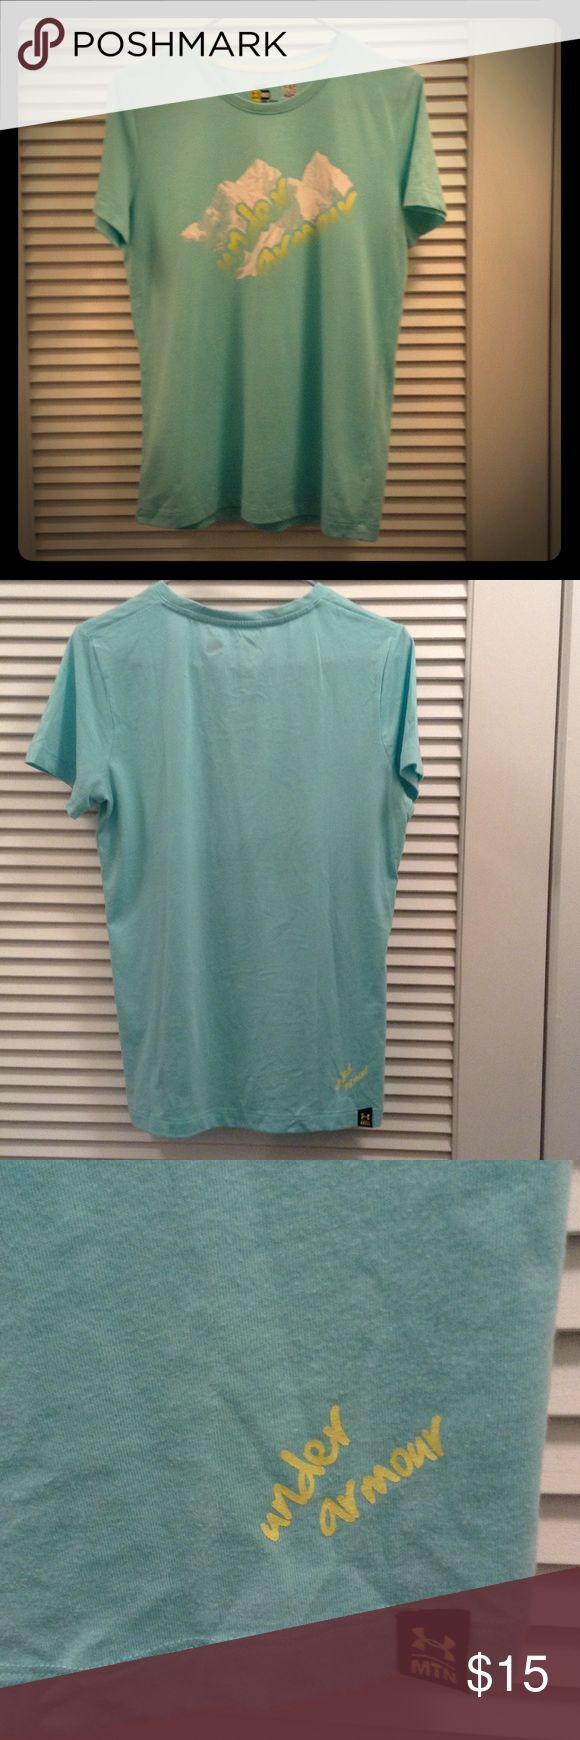 Under Armour Mountain Teal/Mint Shirt Medium This cotton blend t-shirt is comfy and soft Bundle with another top in my closet and save 20% plus receive a free gift. Under Armour Tops Tees - Short Sleeve